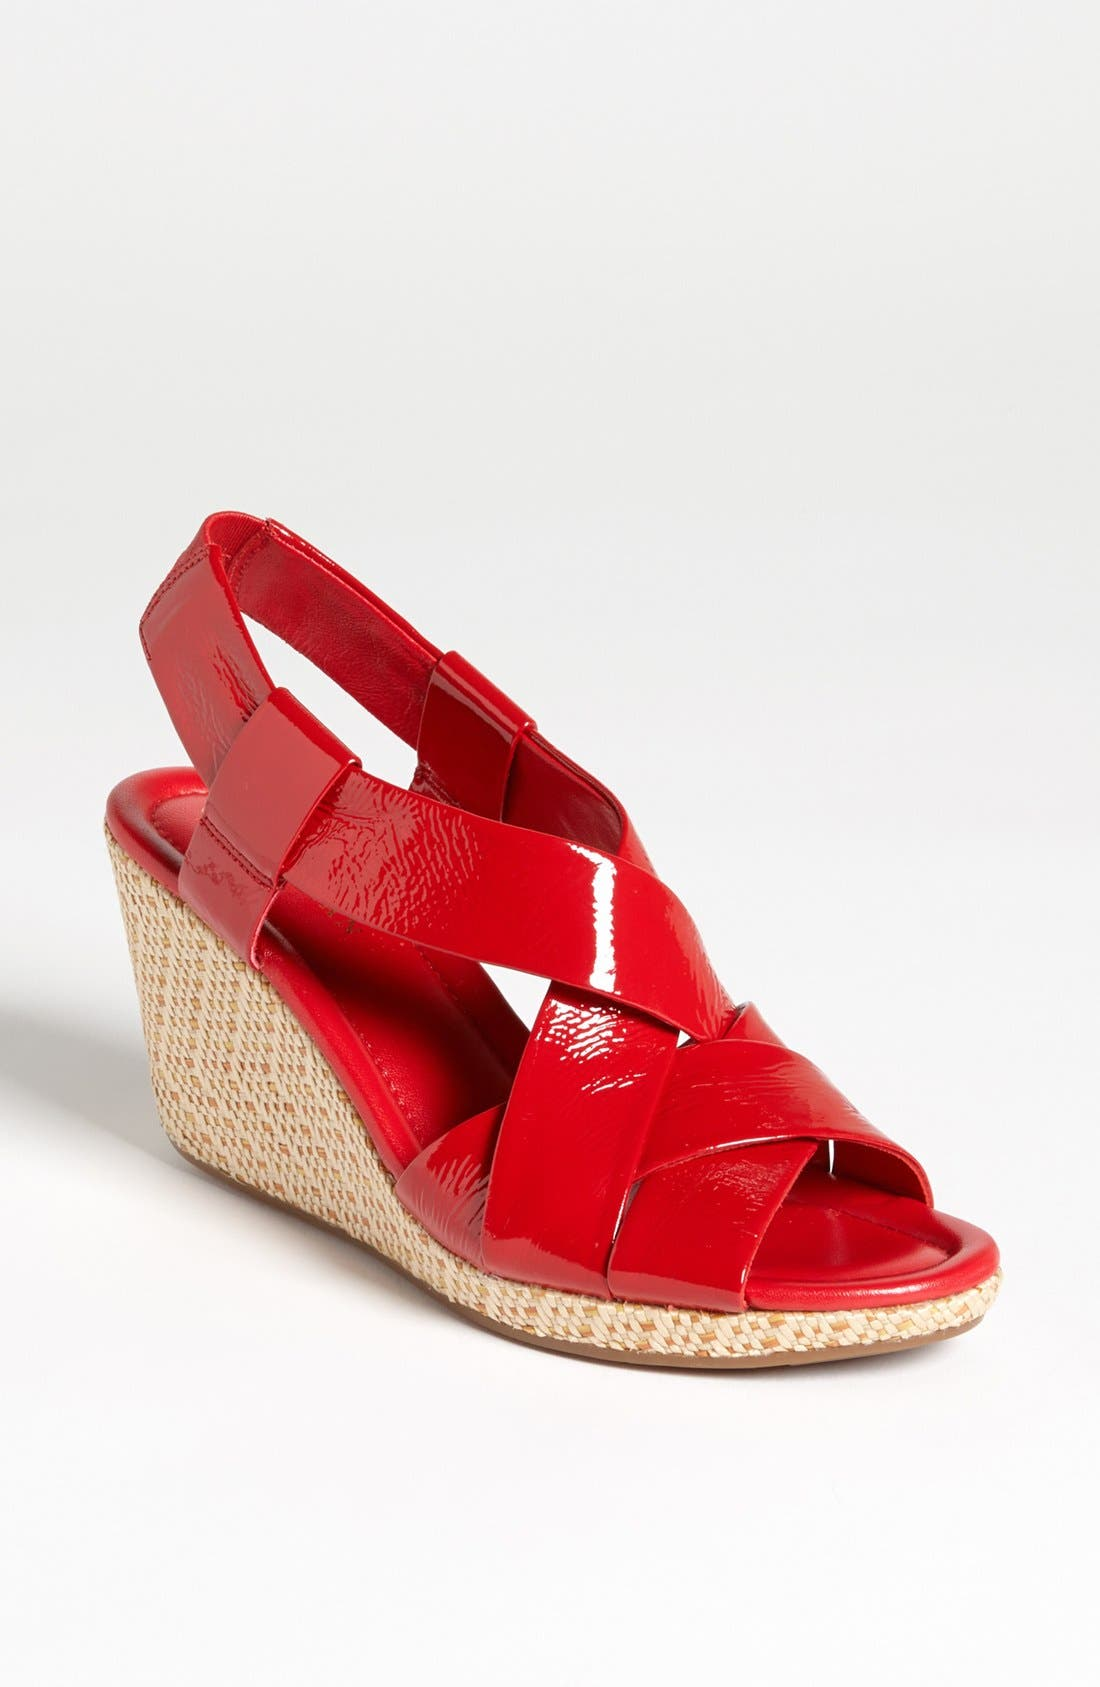 Main Image - Cole Haan 'Air Dinah' Sandal